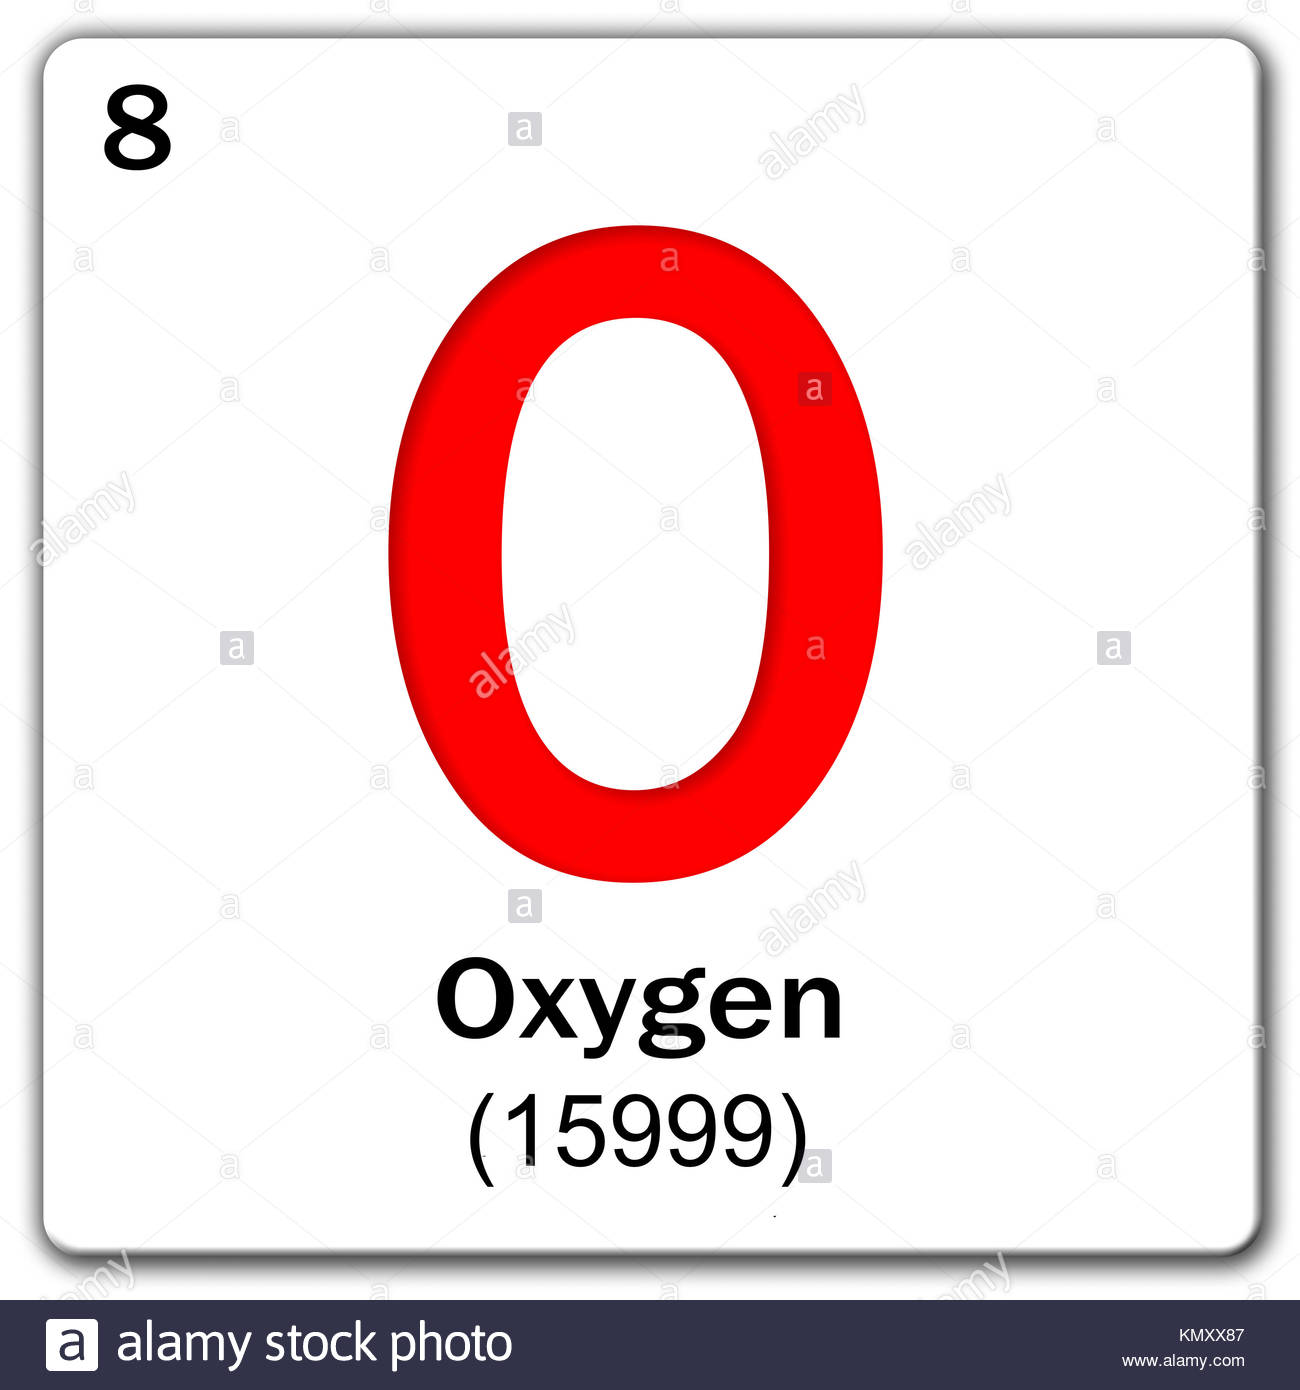 Periodic table elements oxygen stock photos periodic table digital illustration chemical element oxygen stock image biocorpaavc